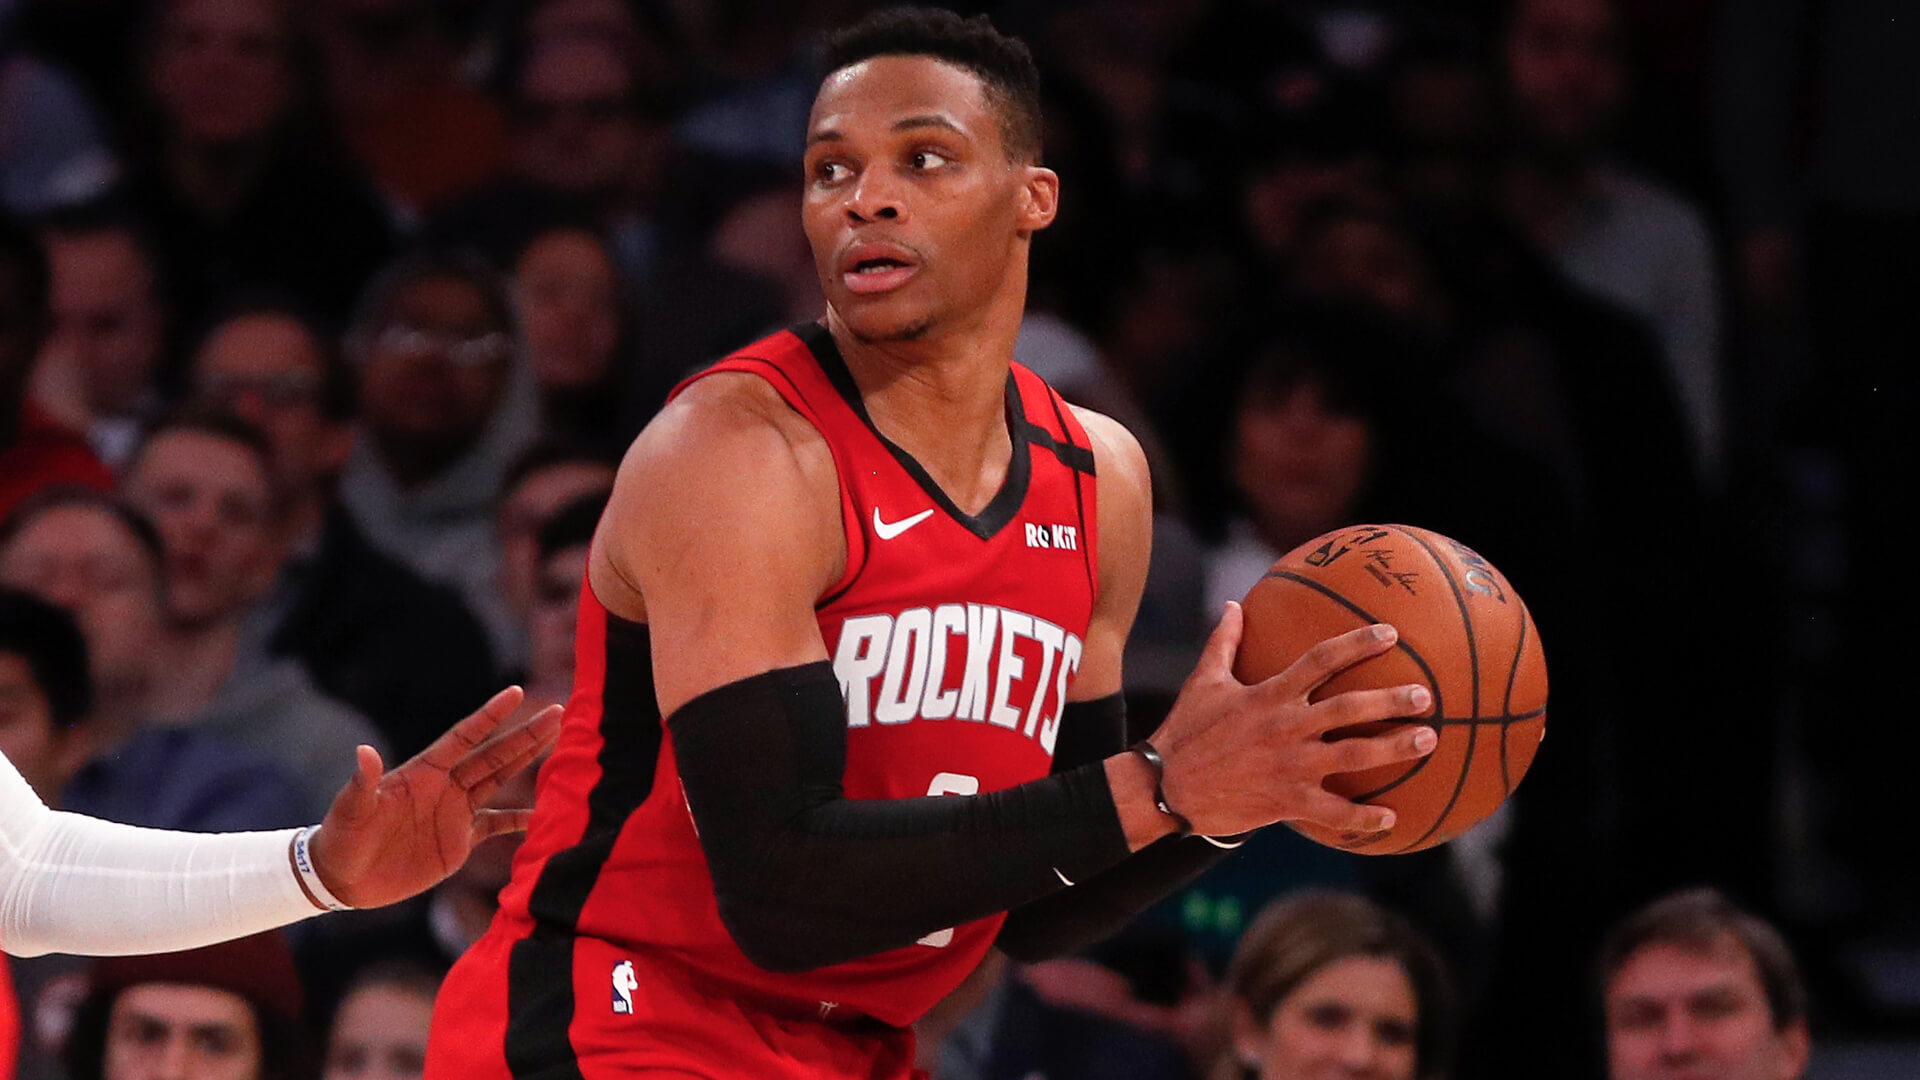 NEW YORK, NEW YORK - MARCH 02: (NEW YORK DAILIES OUT)  Russell Westbrook #0 of the Houston Rockets in action against the New York Knicks at Madison Square Garden on March 02, 2020 in New York City.